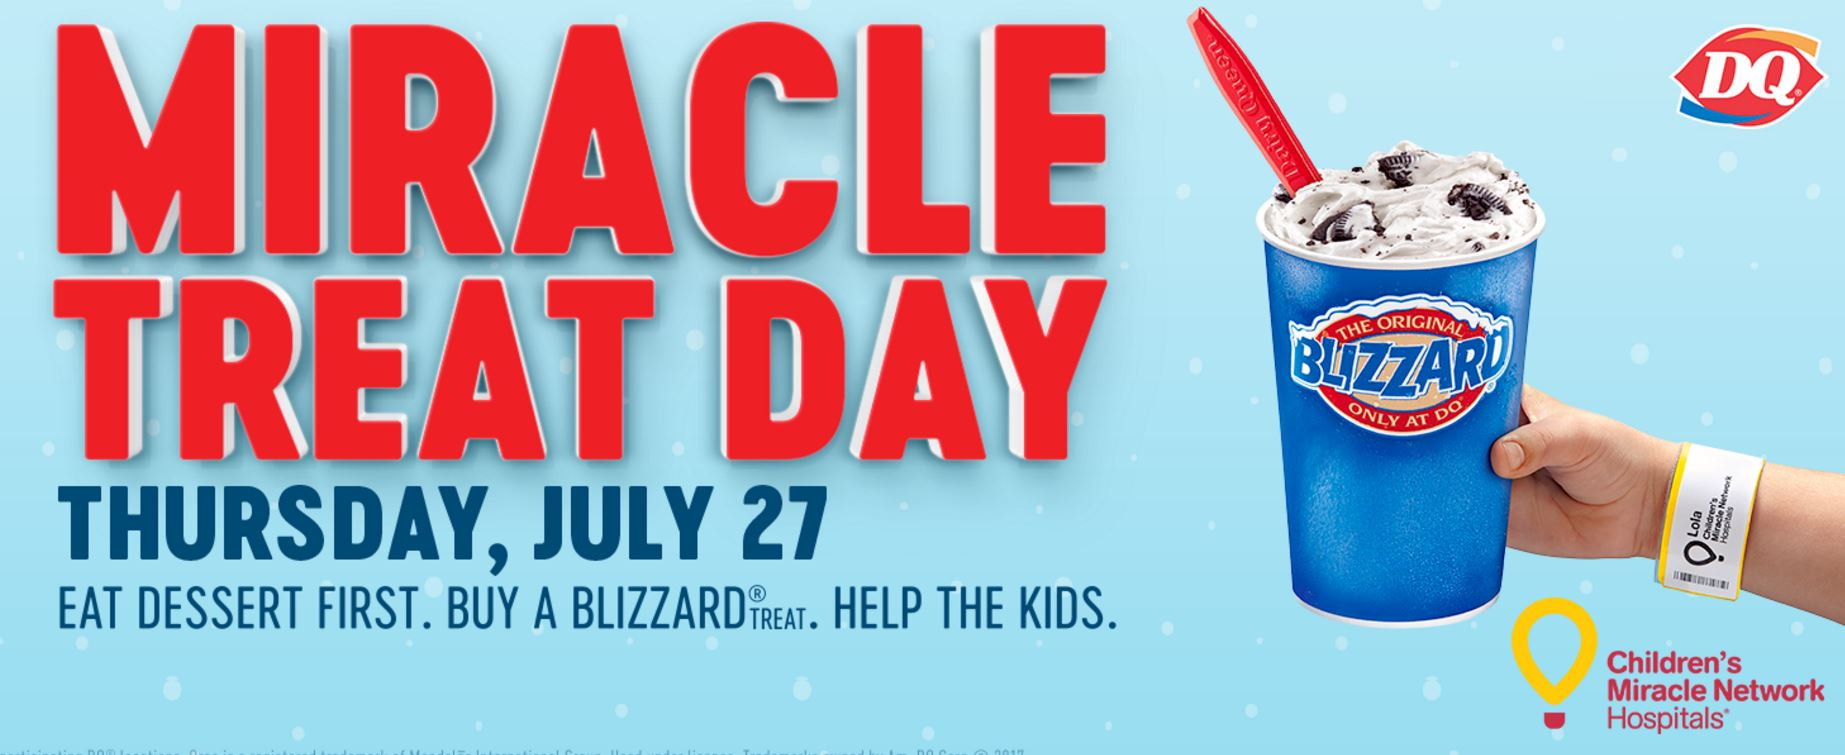 Pre-Order Blizzards at Dairy Queen - Support Children's Miracle Network